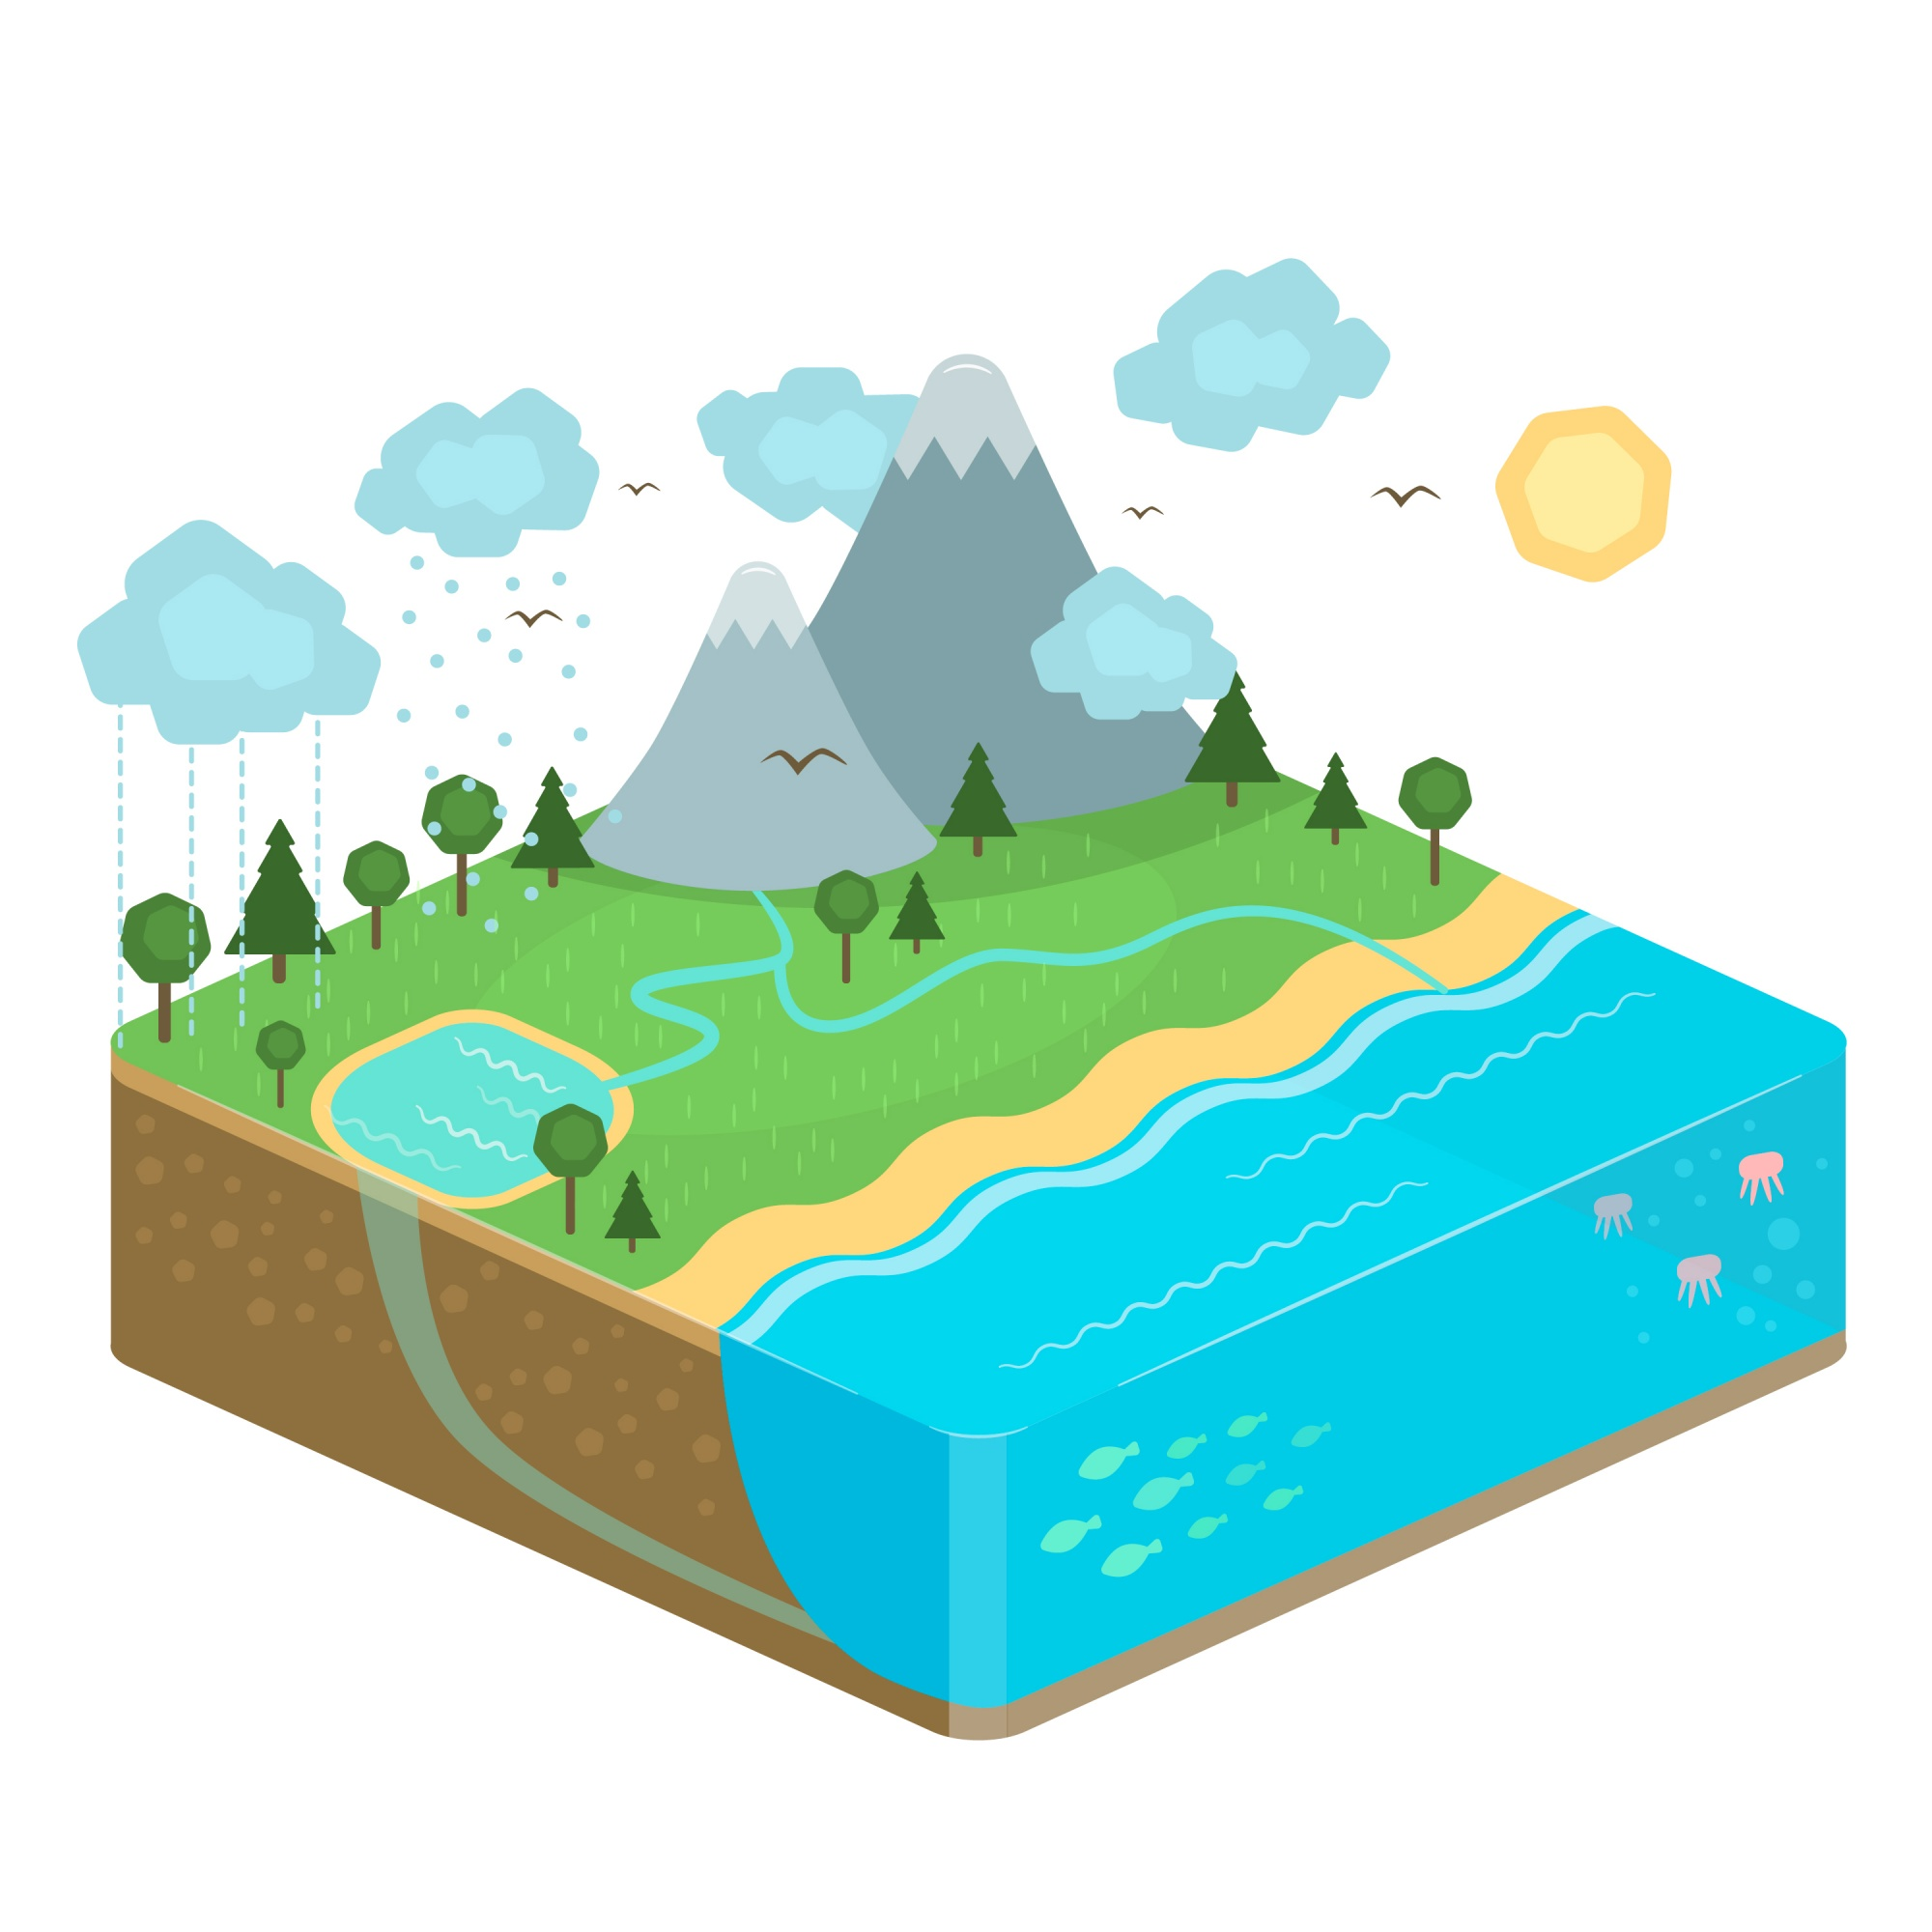 Isometric nature illustration about water cycle